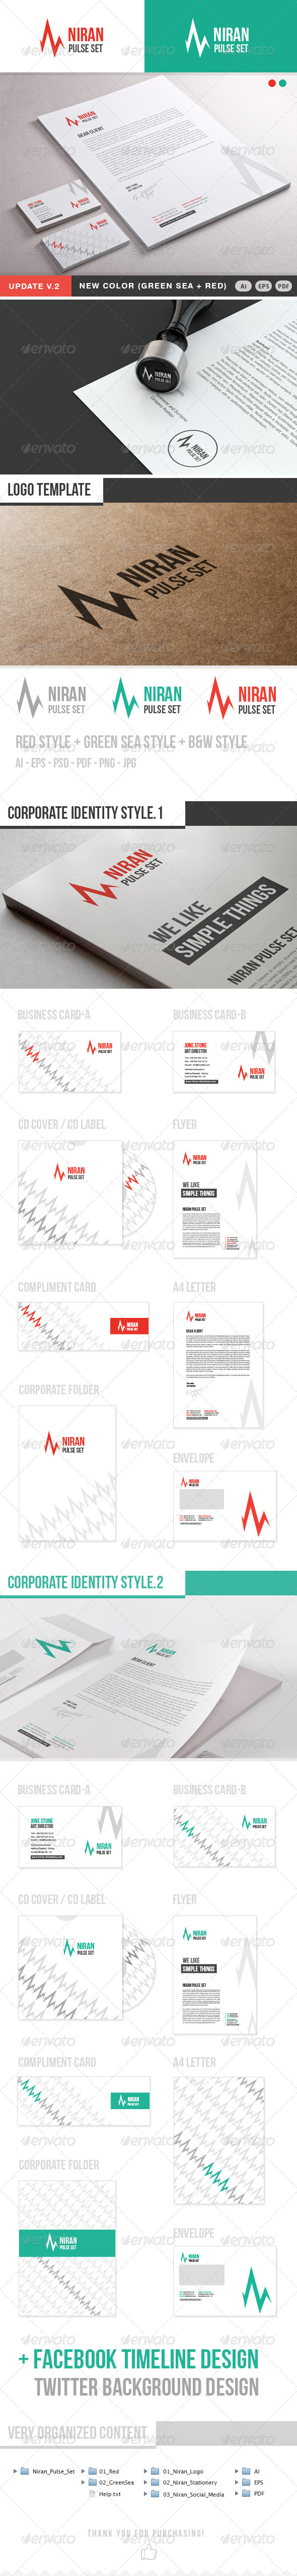 Niran Pulse Stationery - Stationery Print Templates